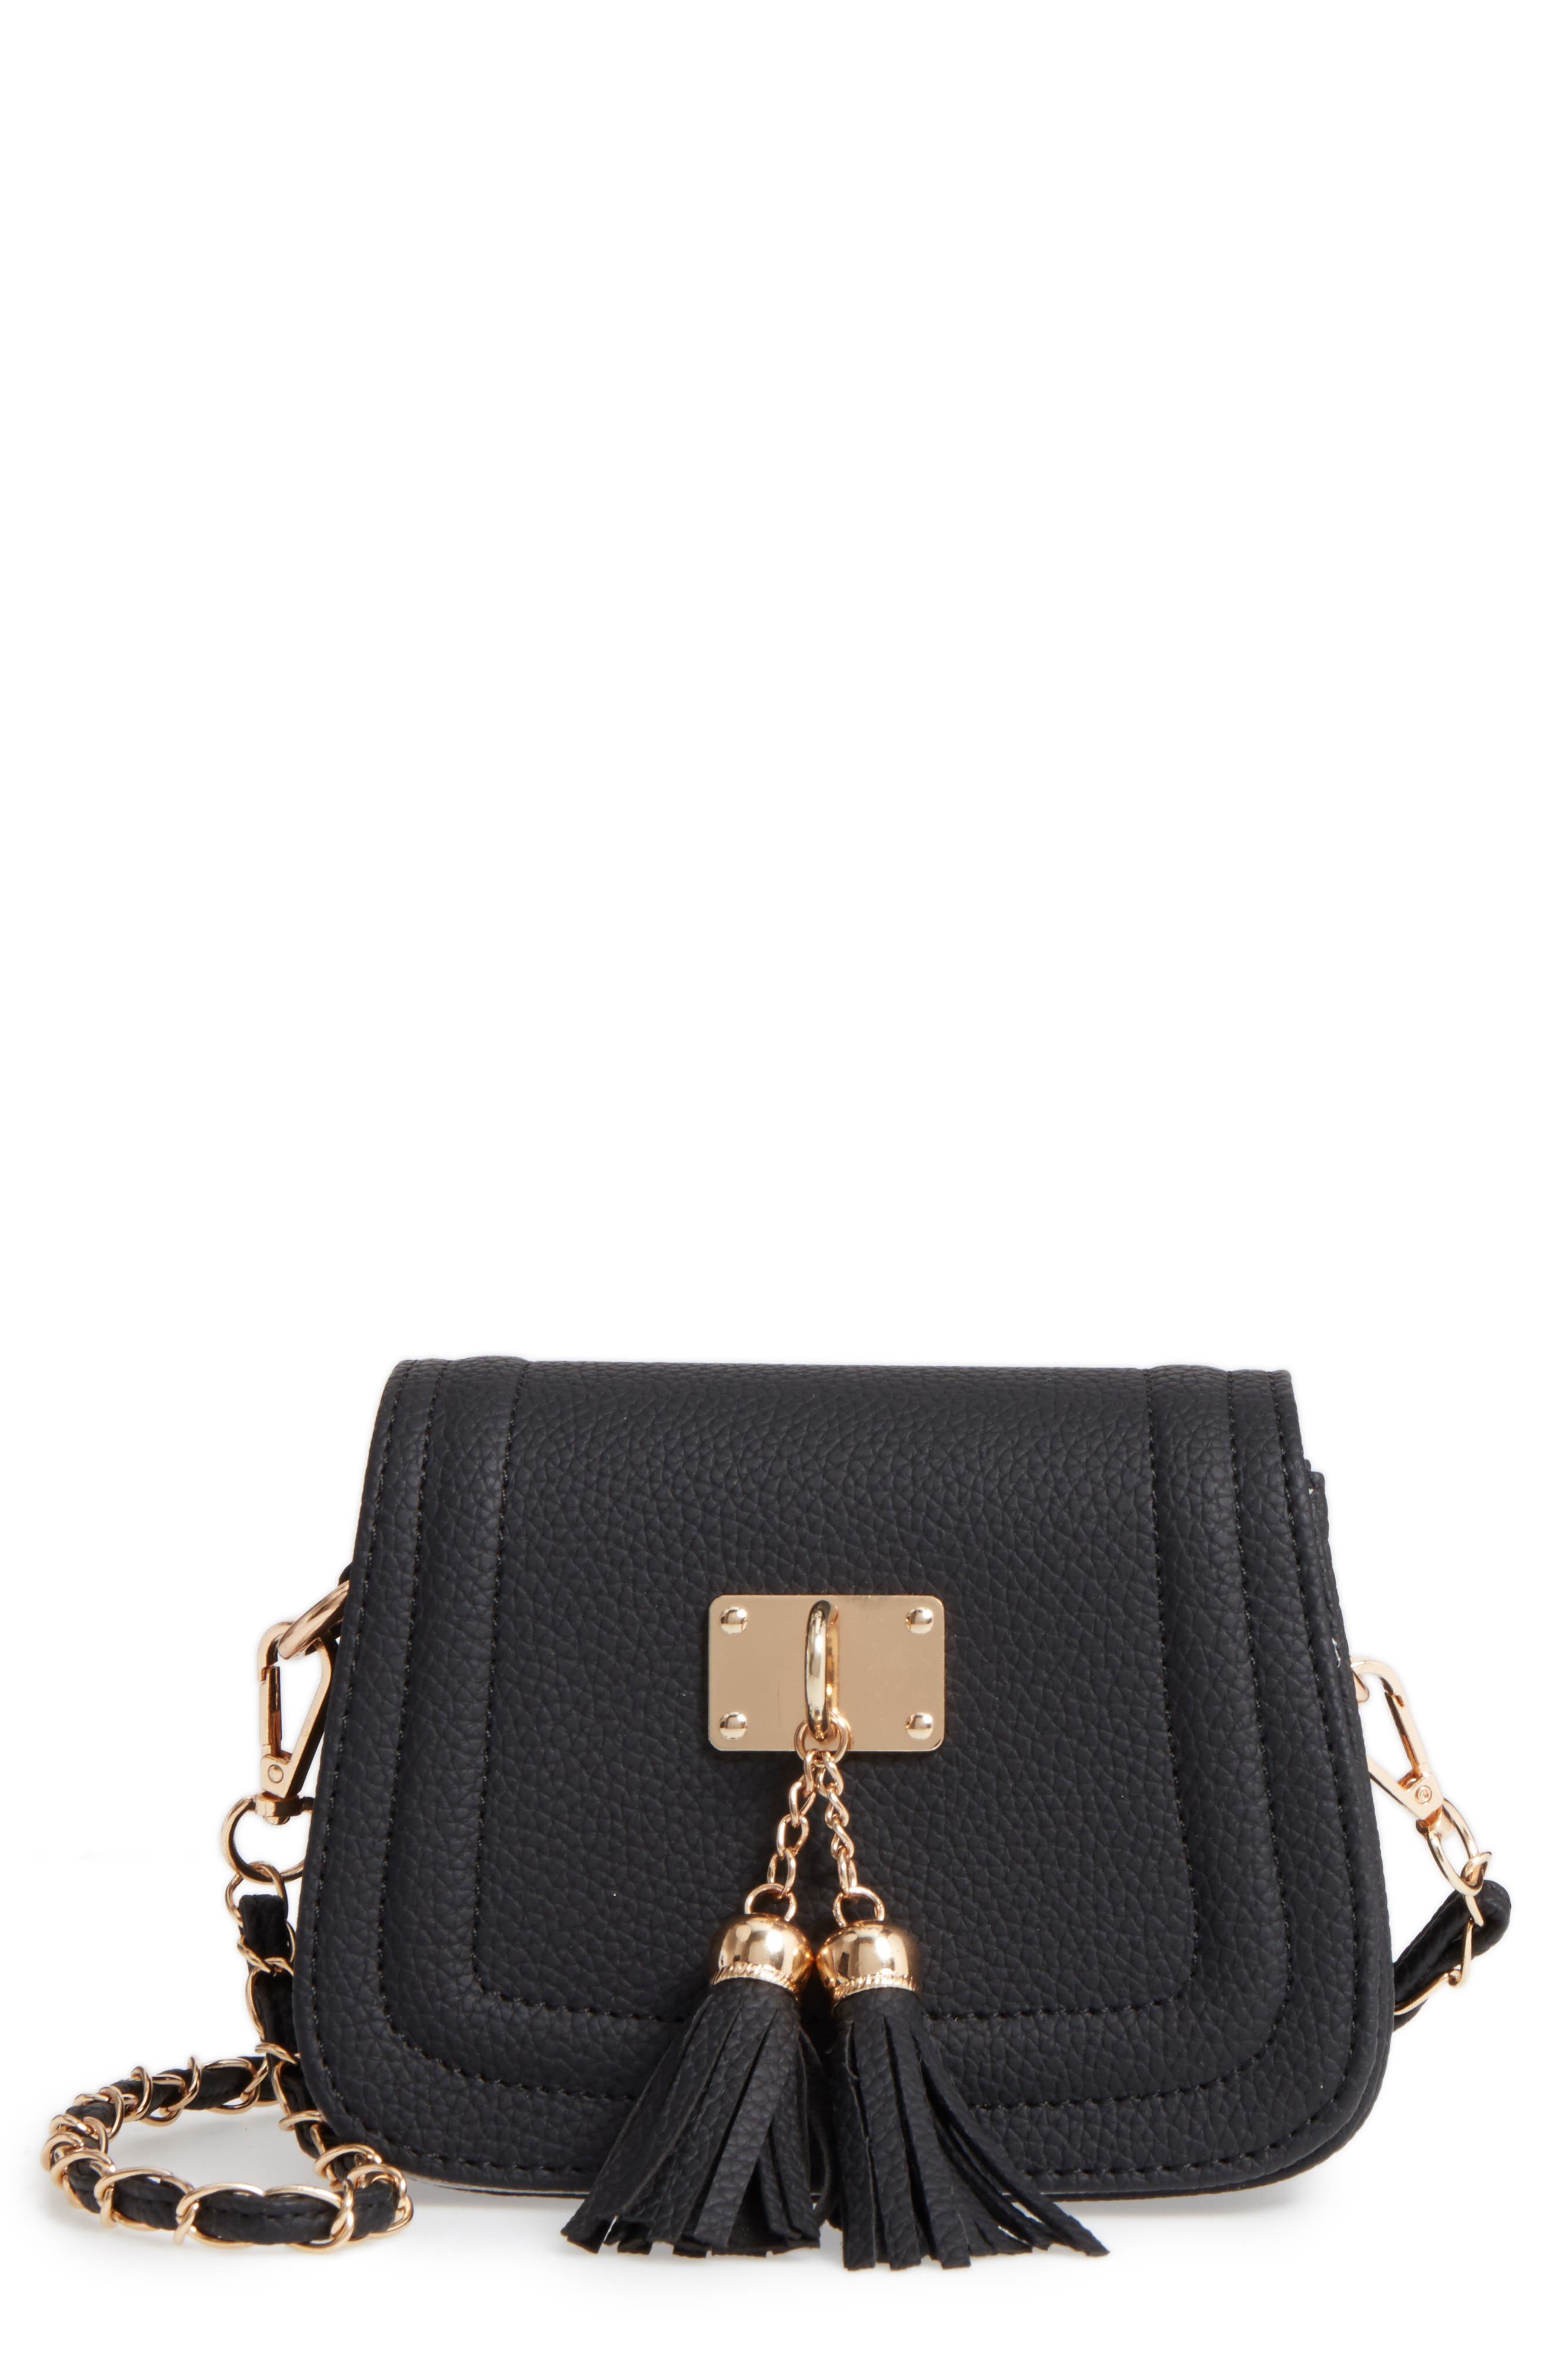 POPATU Double Tassel Faux Leather Shoulder Bag